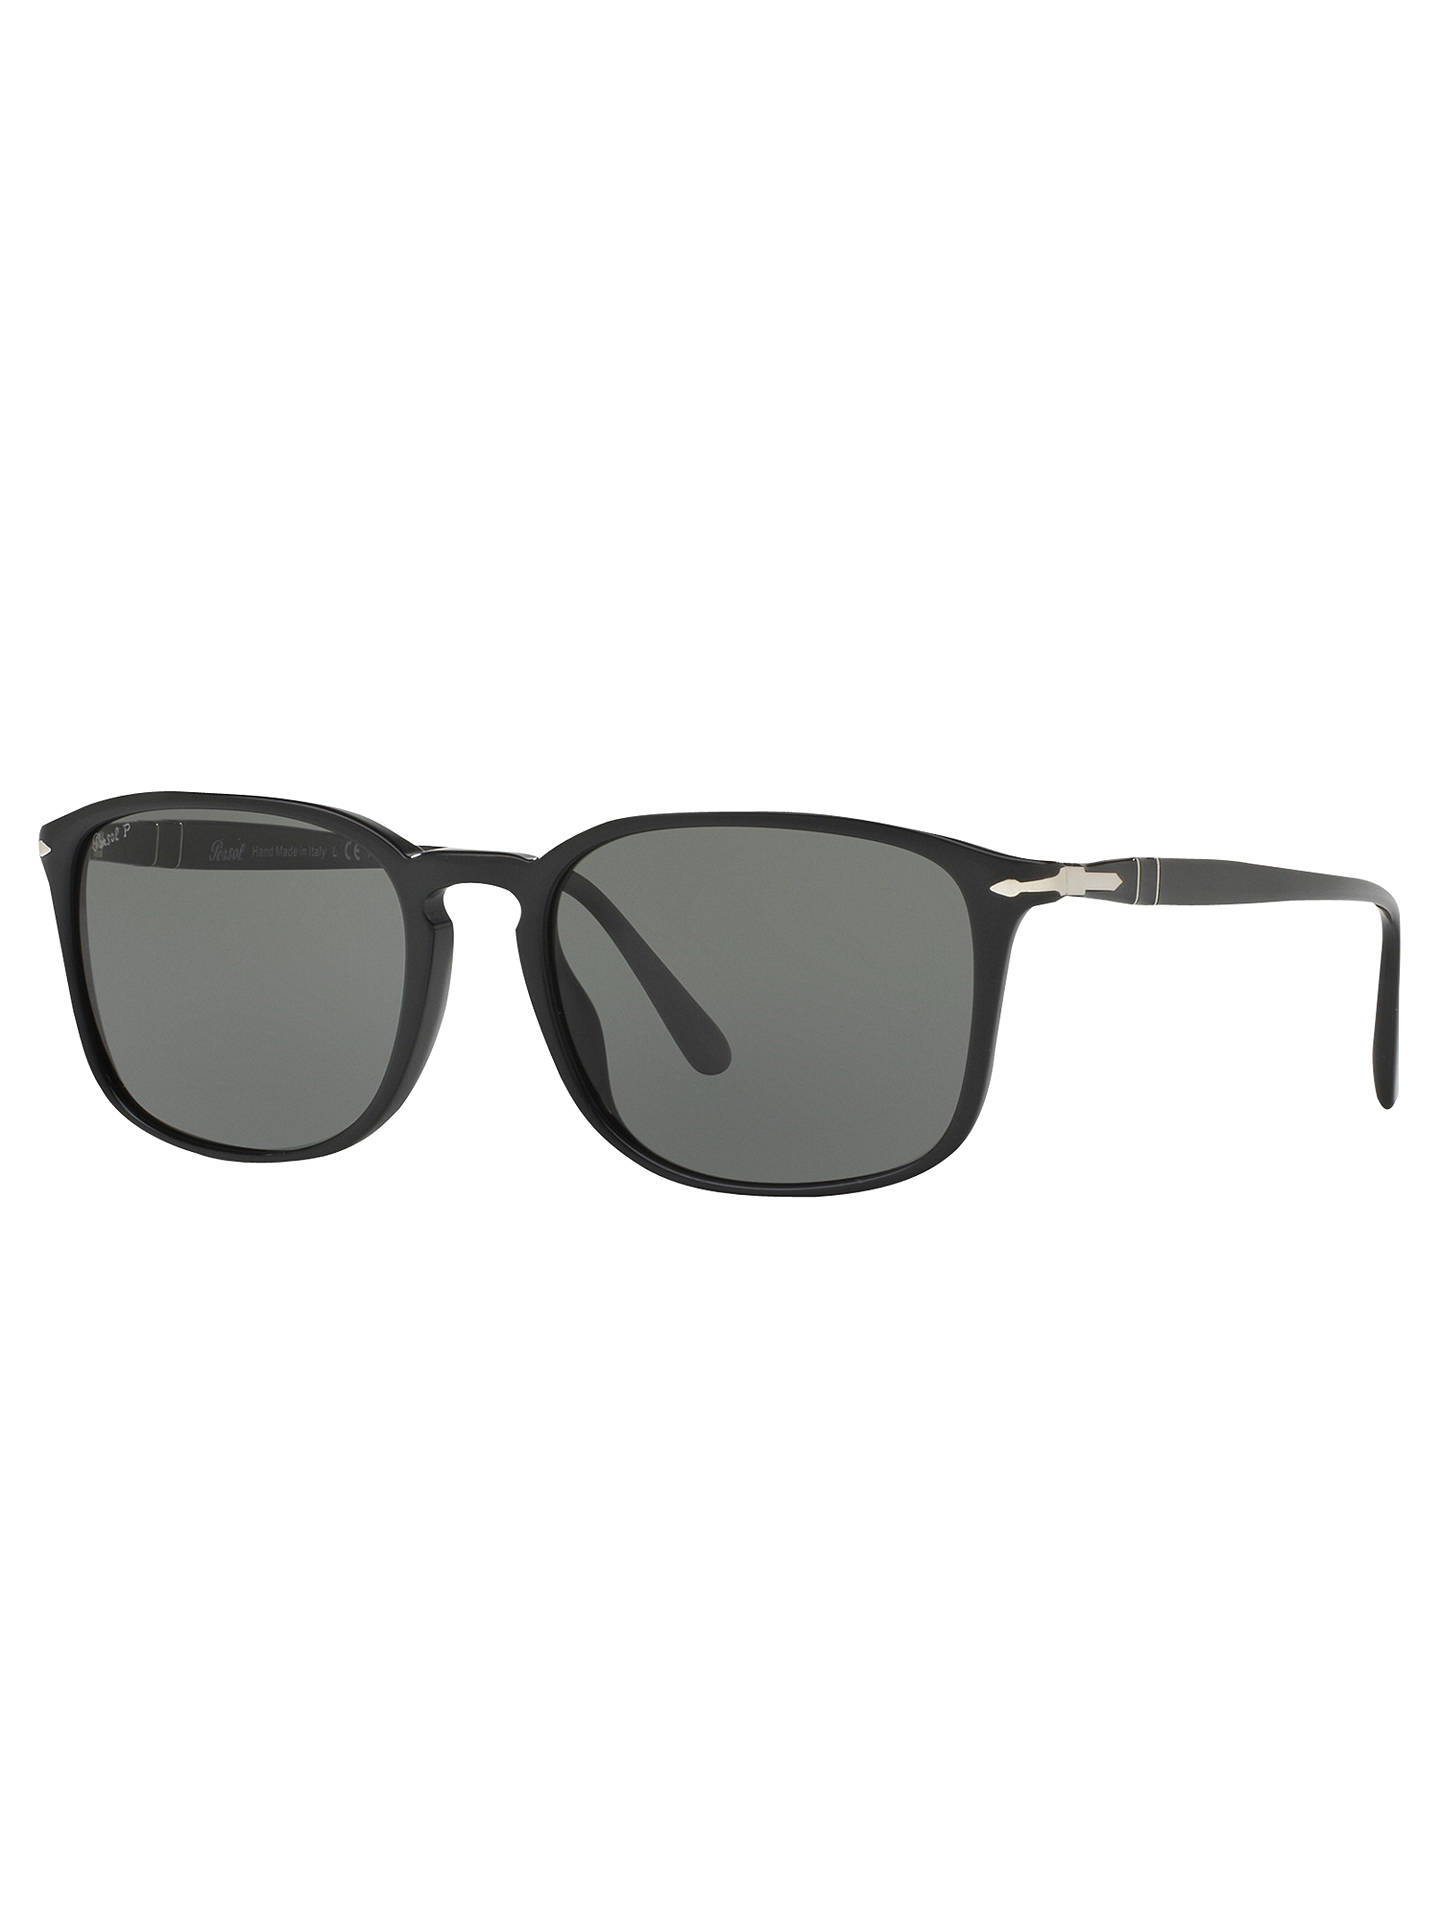 c8cfde7b13cc Buy Persol PO3158S Polarised Square Sunglasses, Black/Grey Online at  johnlewis.com ...